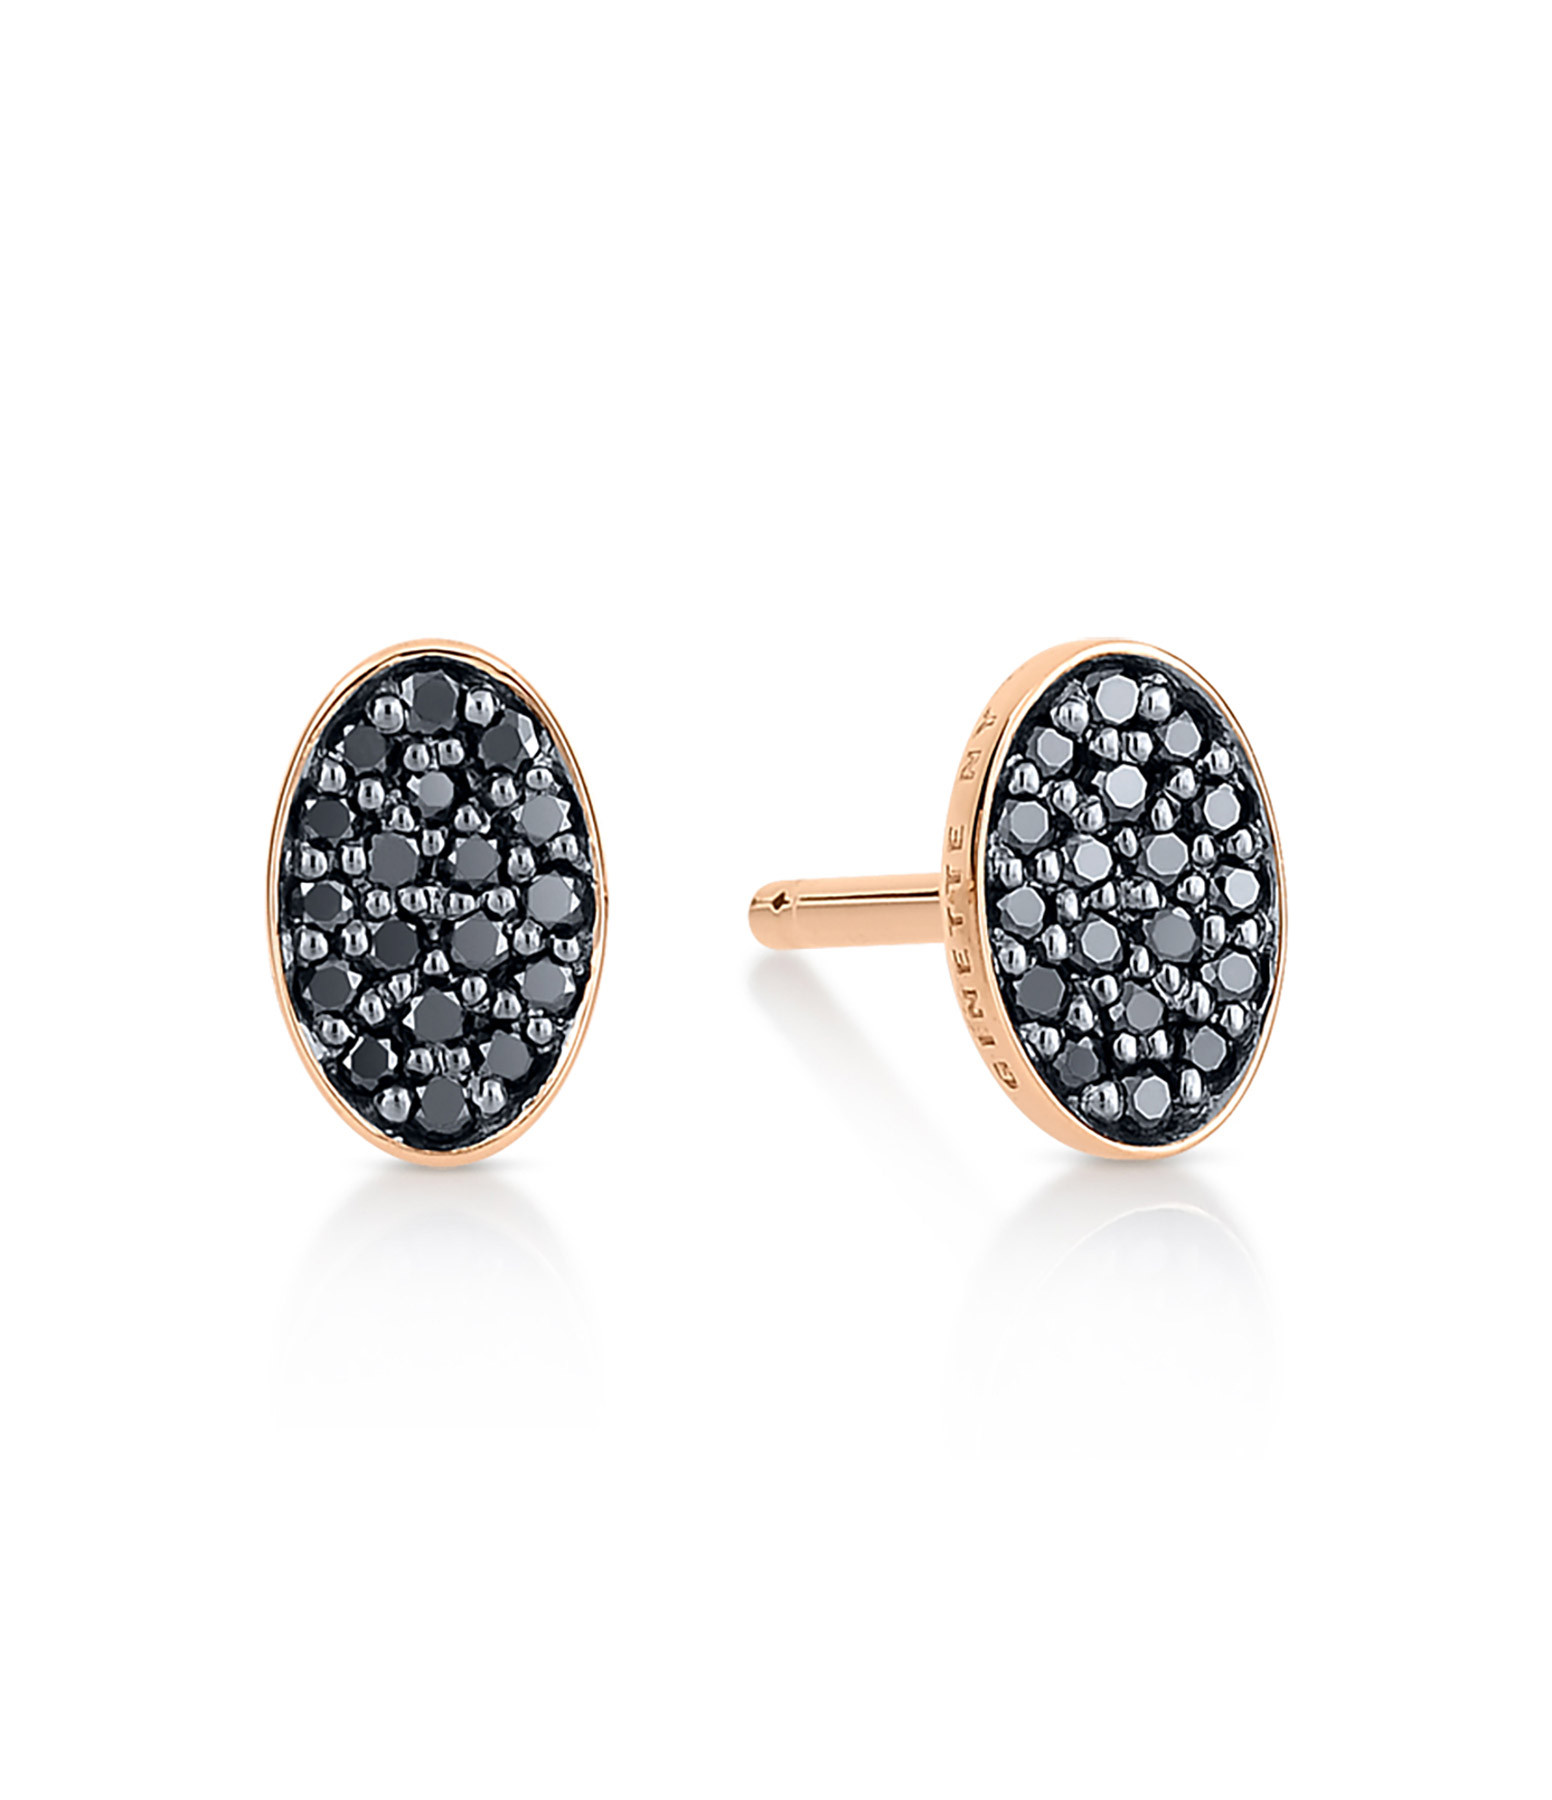 GINETTE_NY - Boucles d'oreilles Sequin Or Rose Diamants Noirs